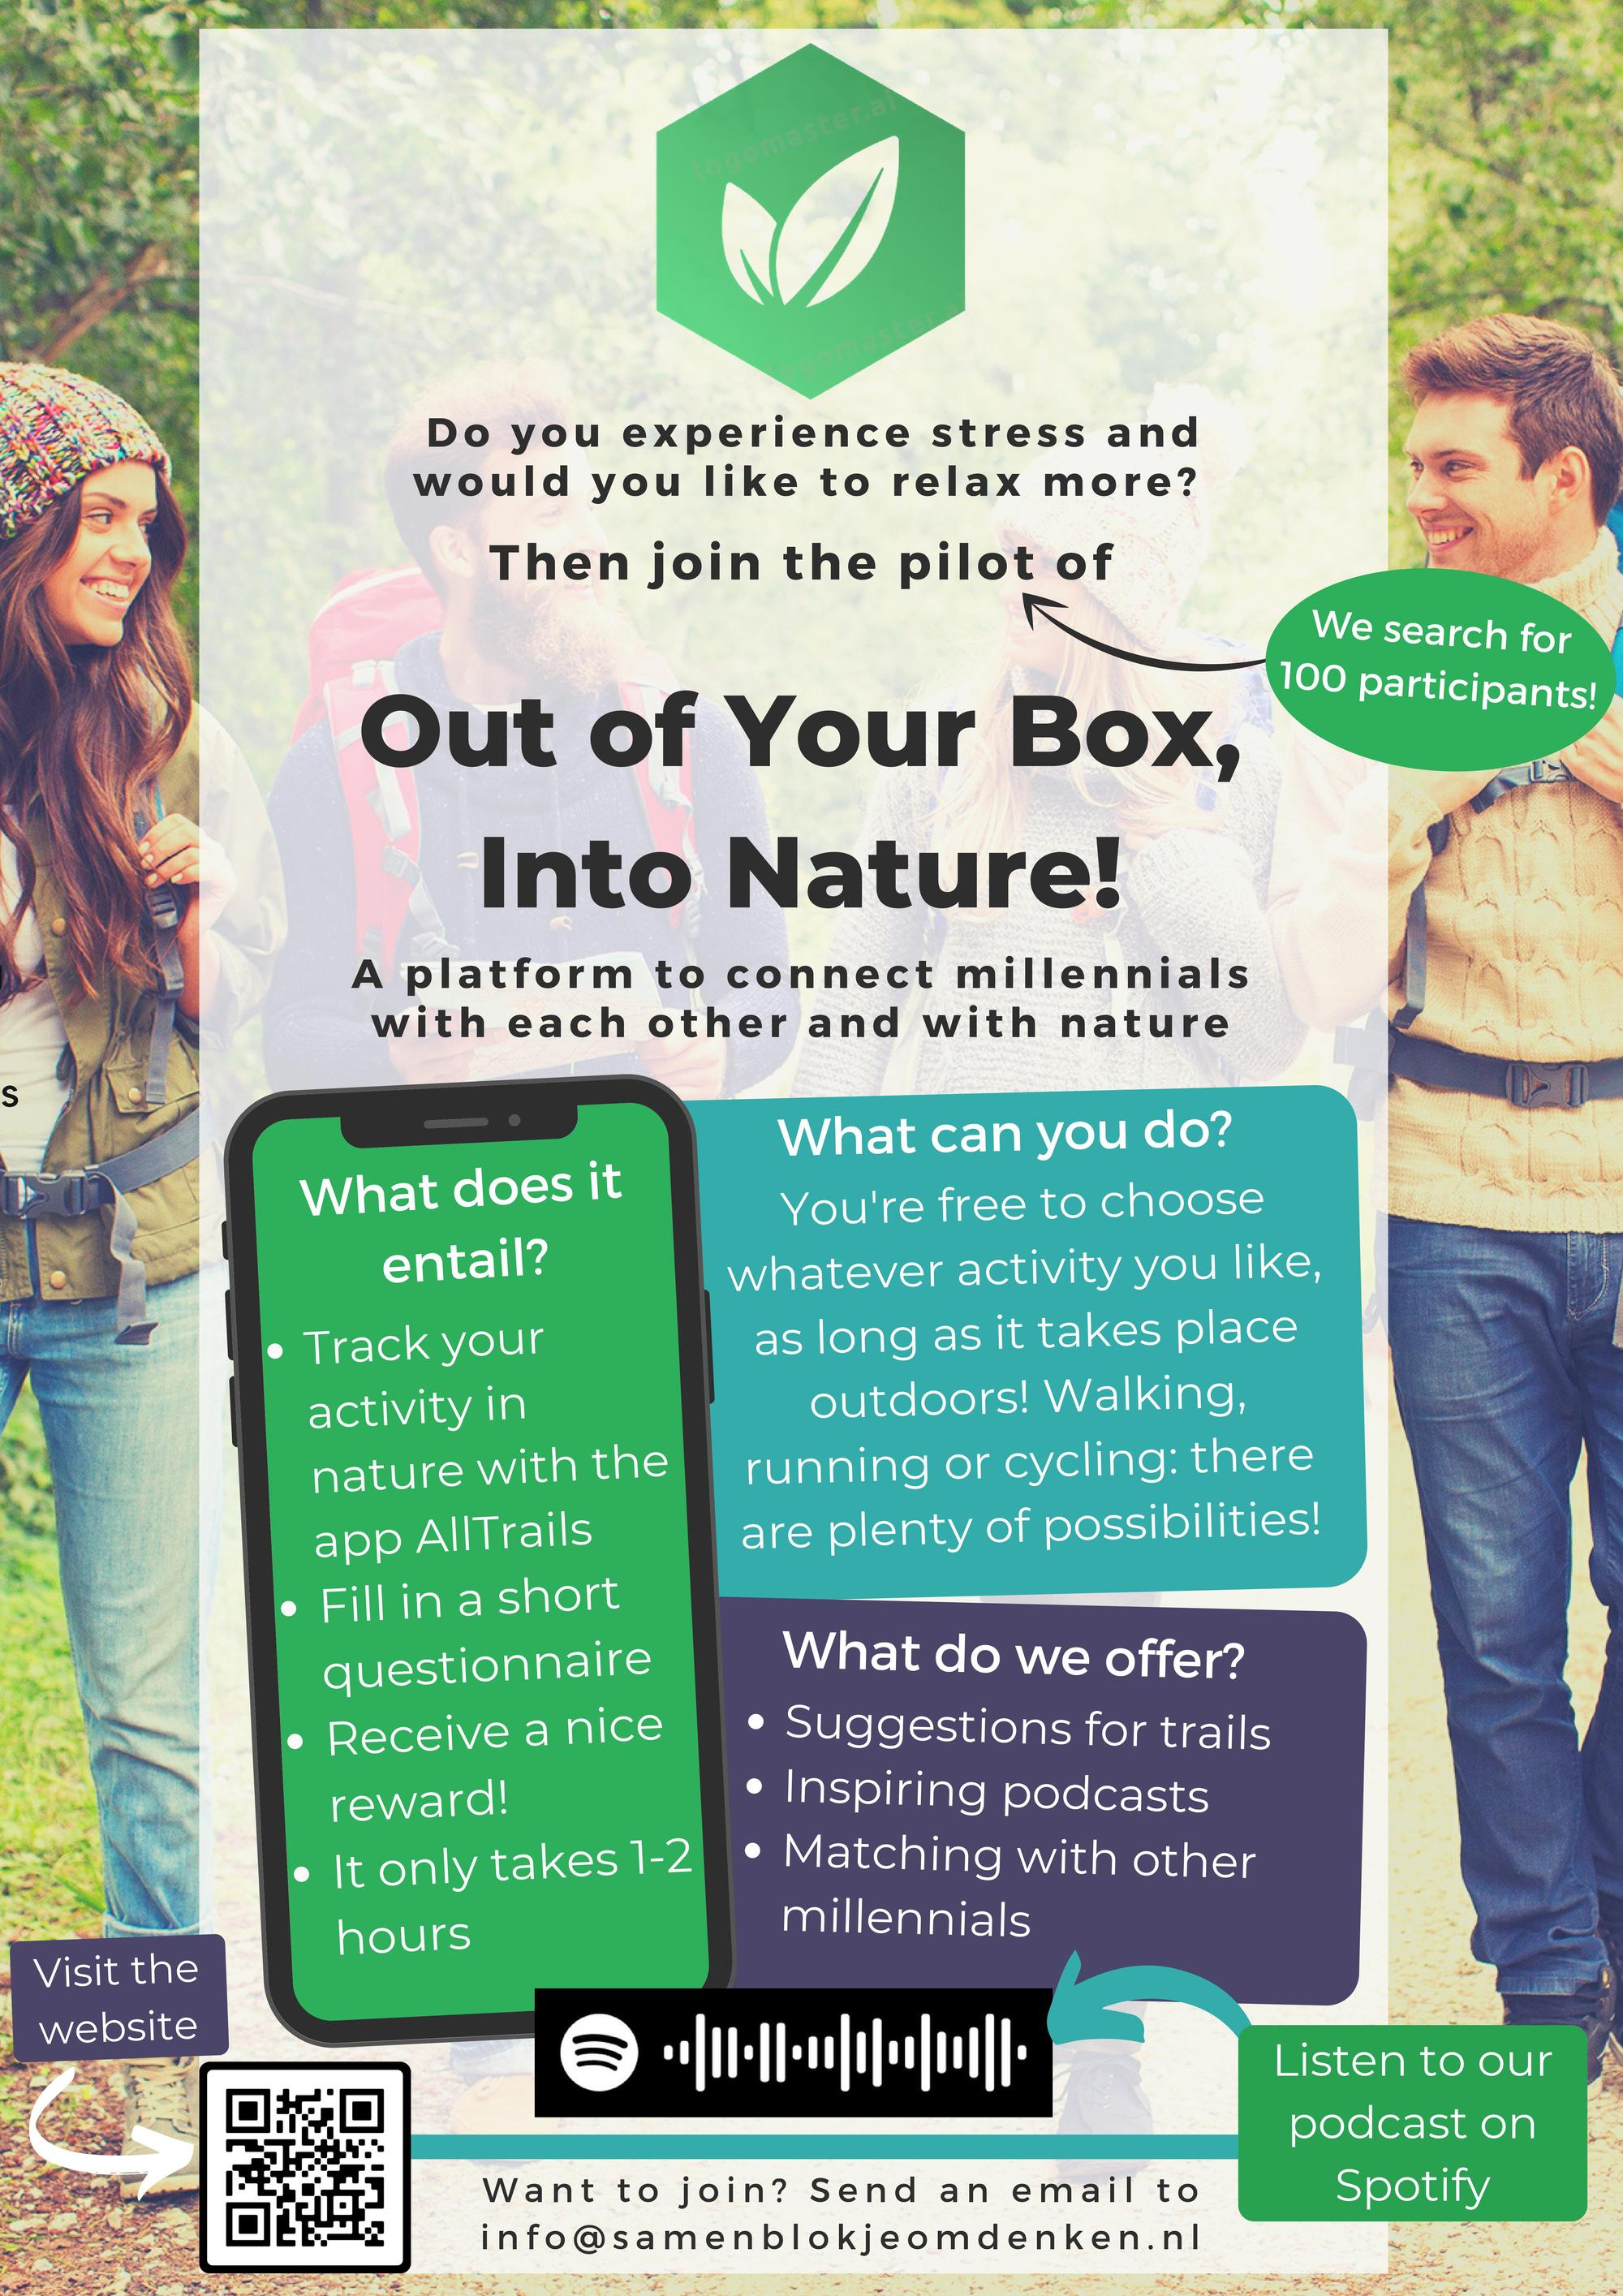 Out of Your Box, Into Nature!